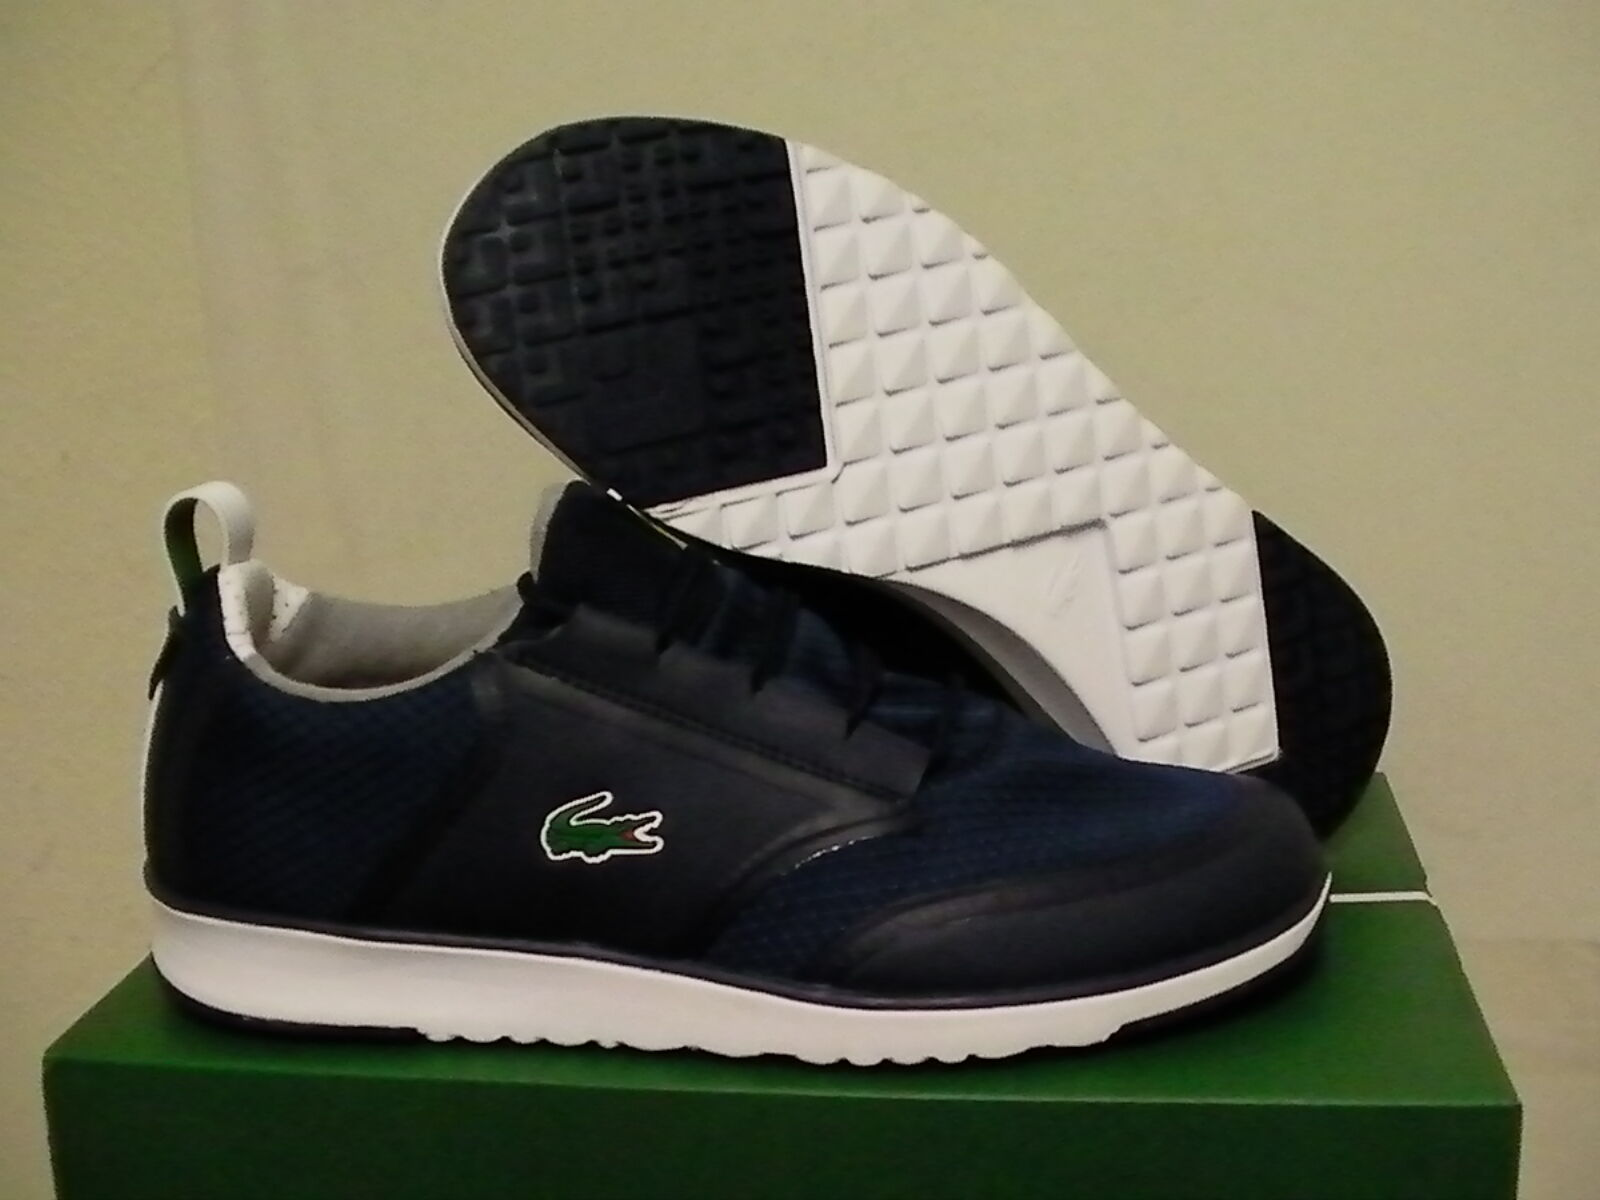 Lacoste shoes L.IGHT LT12 spm txt/syn dark blue training size 9.5 new with box Scarpe classiche da uomo